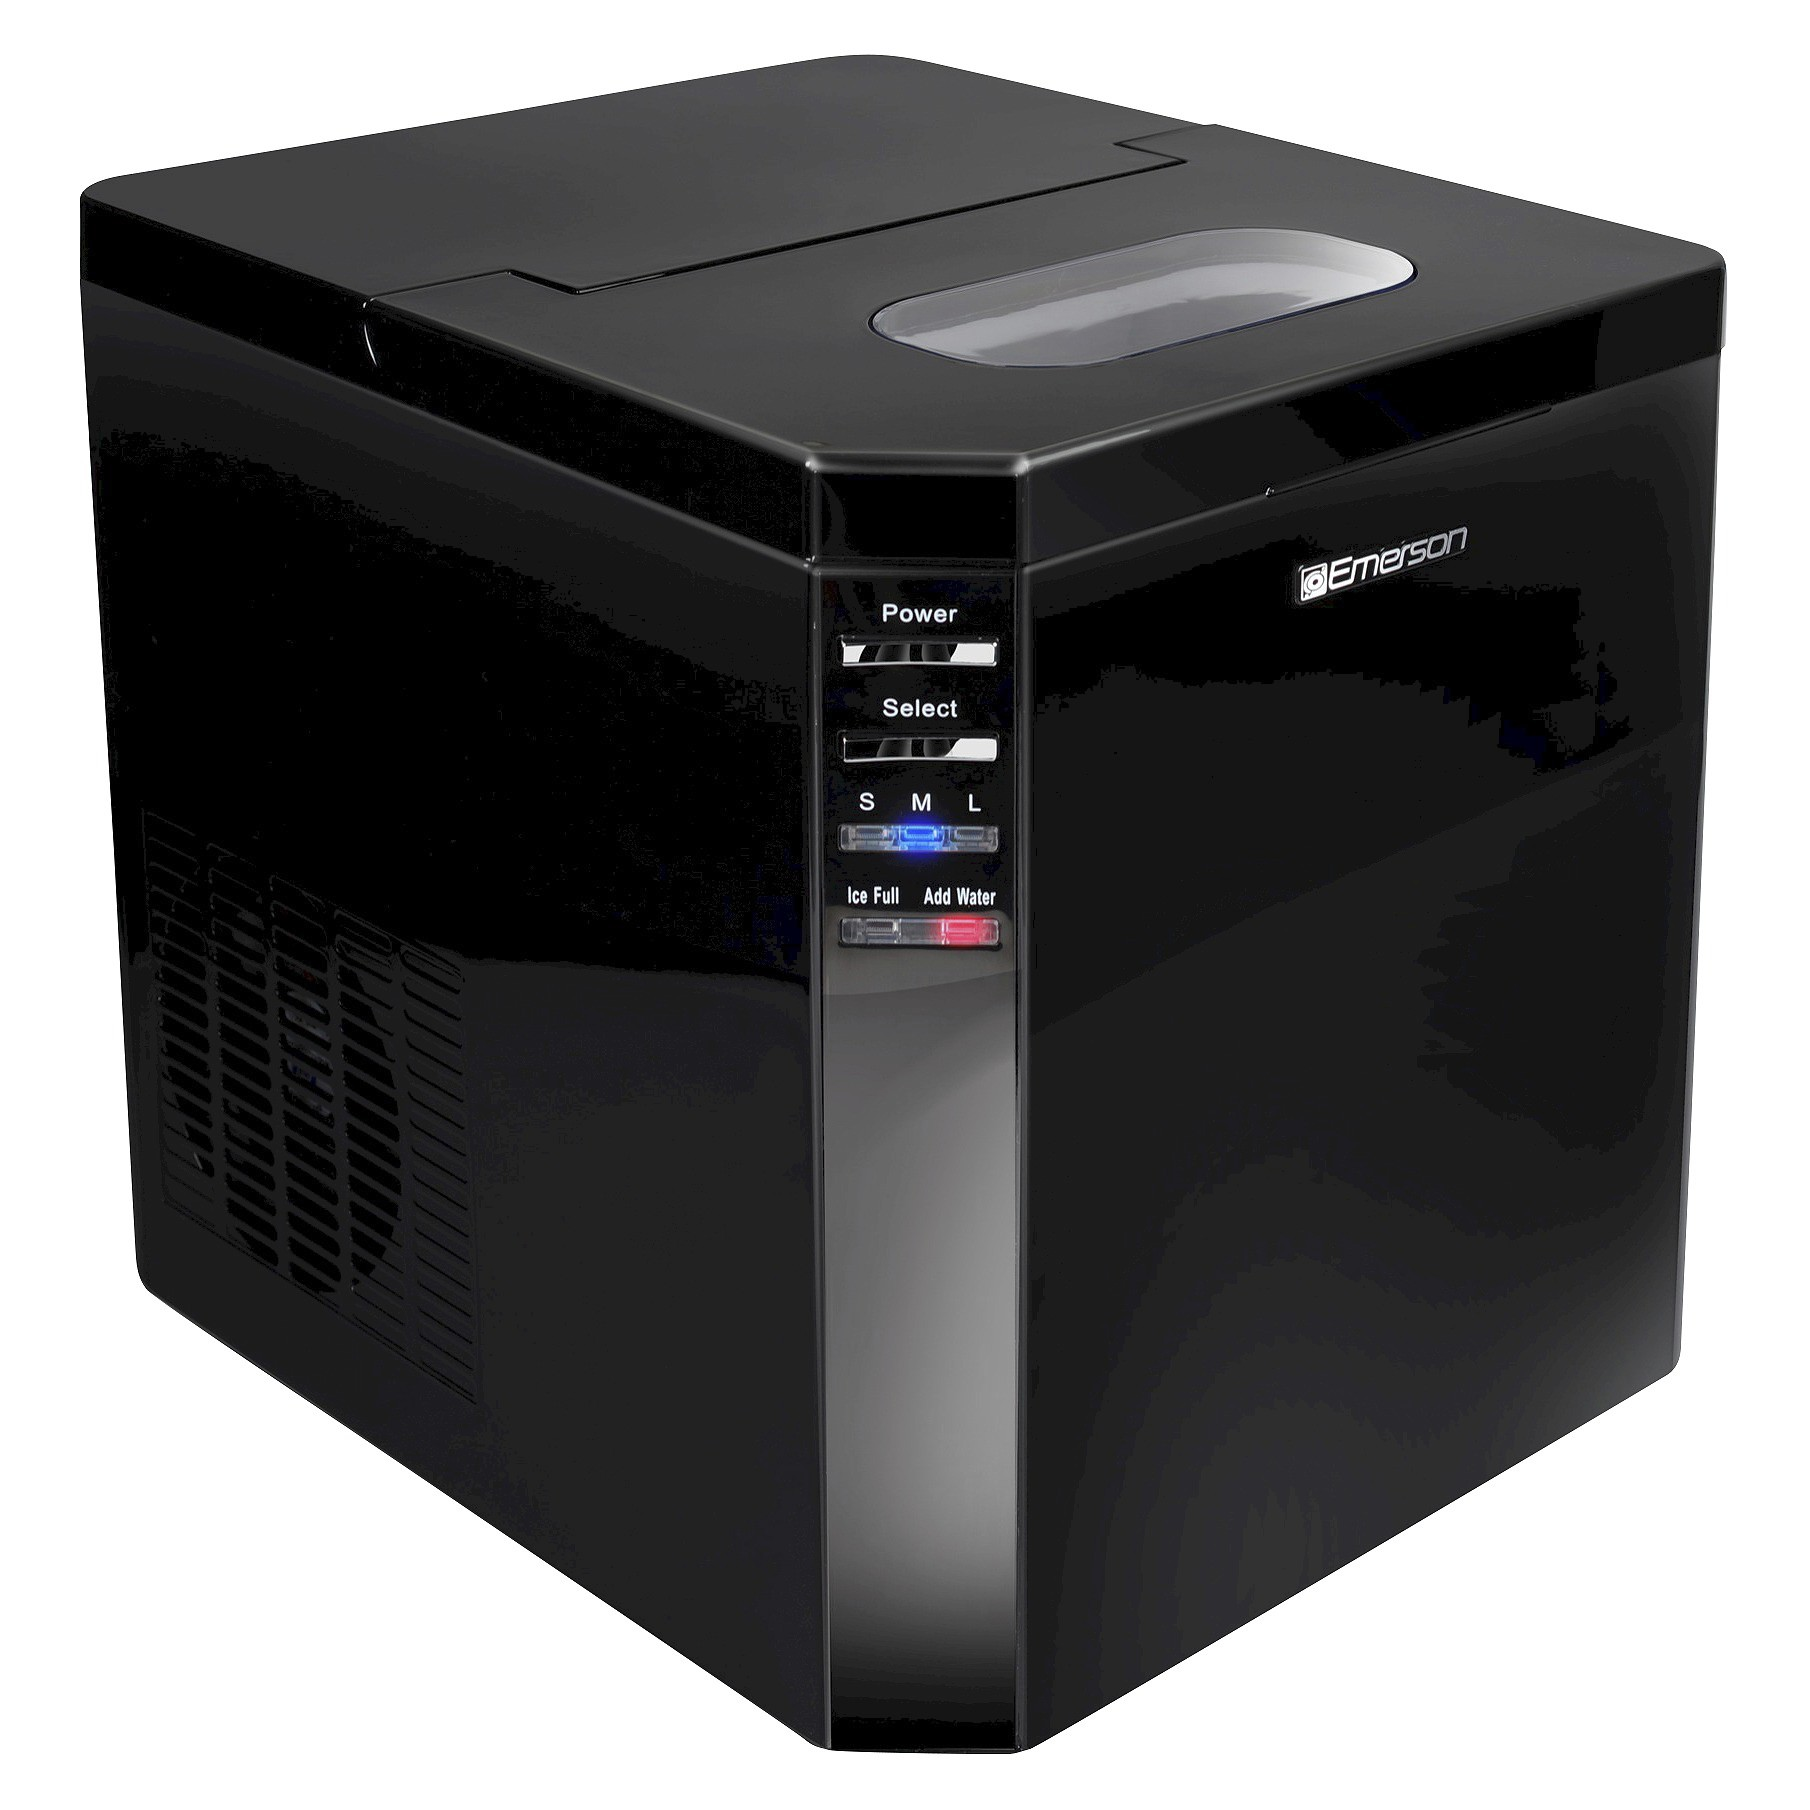 Refurbished Emerson IM93B Portable Countertop 27 Lbs Ice Maker Refrigerator  W/Ice Scoop   Walmart.com